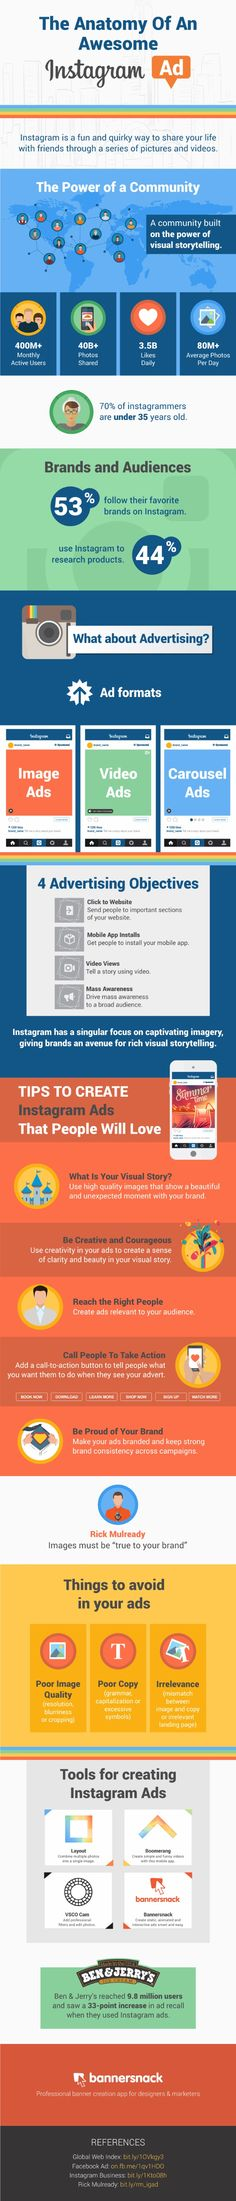 The Anatomy of an Awesome Instagram Ad [INFOGRAPHIC] | Social Media Today